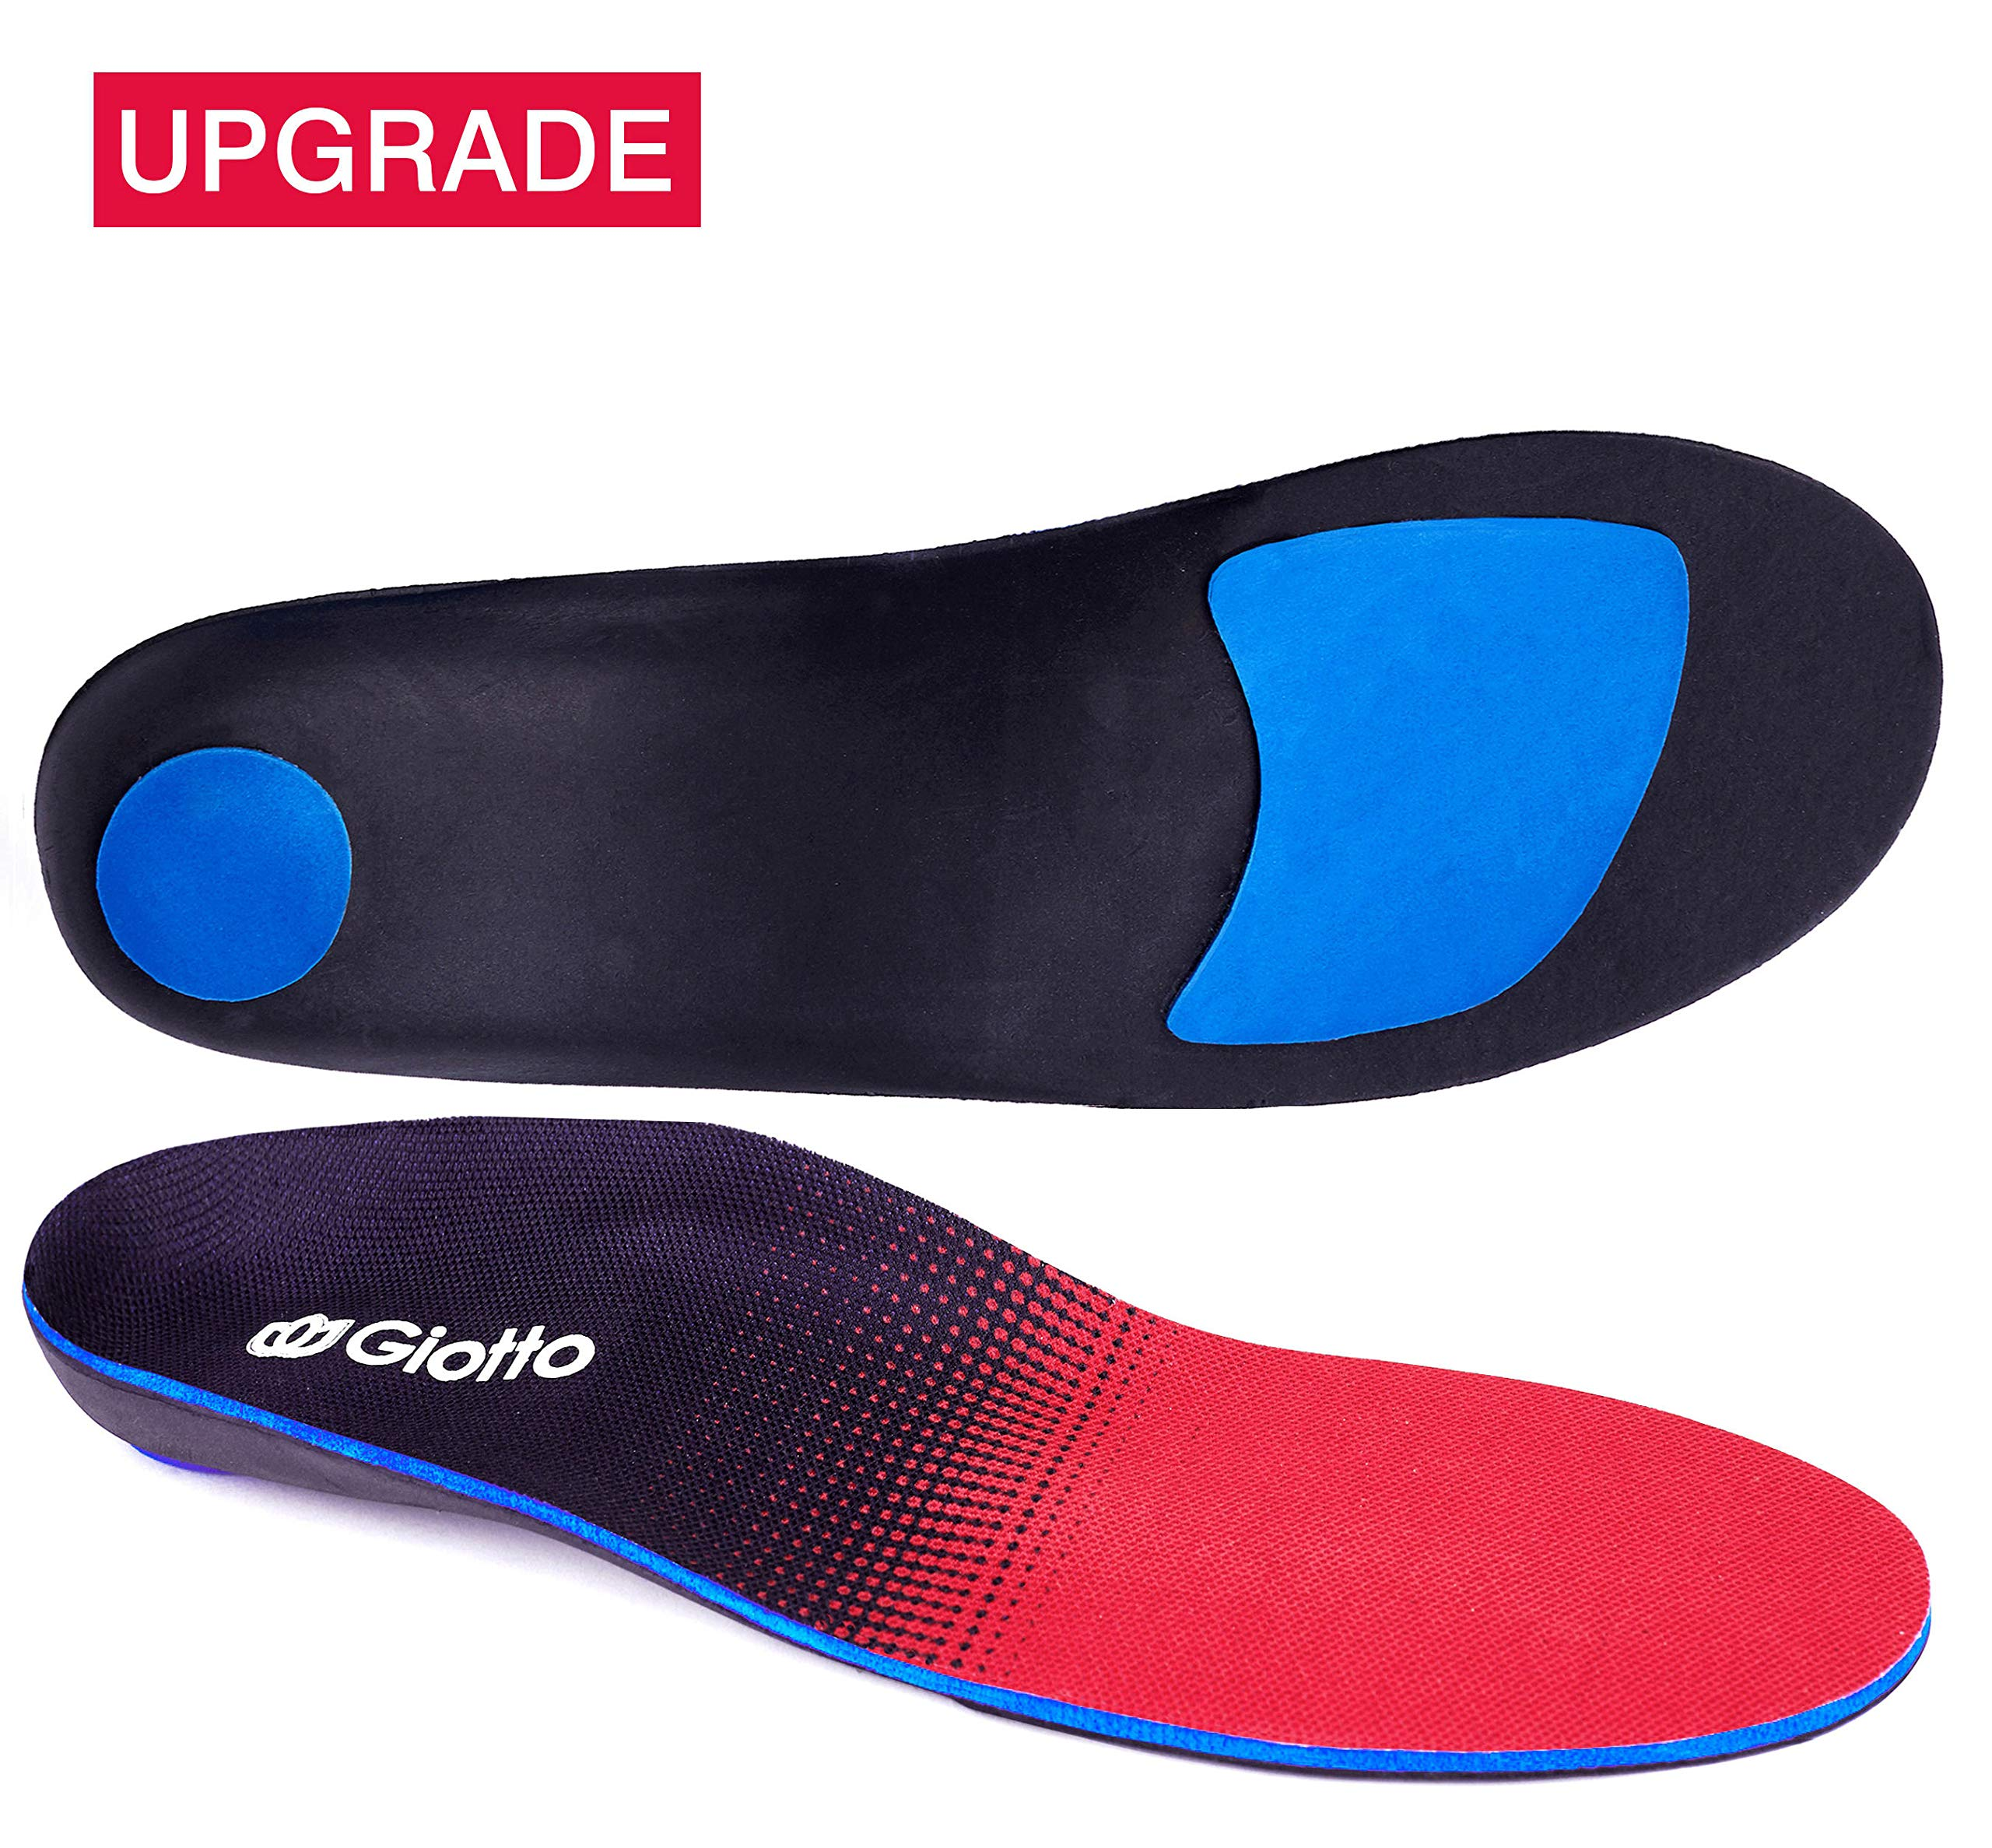 Giotto Plantar Fasciitis Flat Feet Orthotic High Arch Support Inserts Insoles Relieve Pronation Heel Ankle Foot Pain for Women Men-Black/Red-9